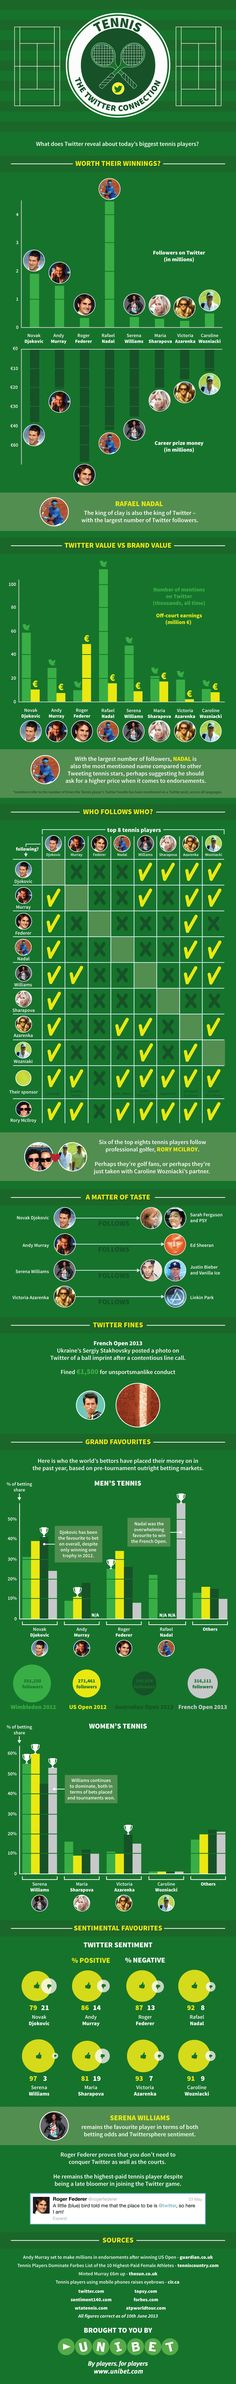 Tennis: the twitter connection #tennis #infografica #tennisreporter